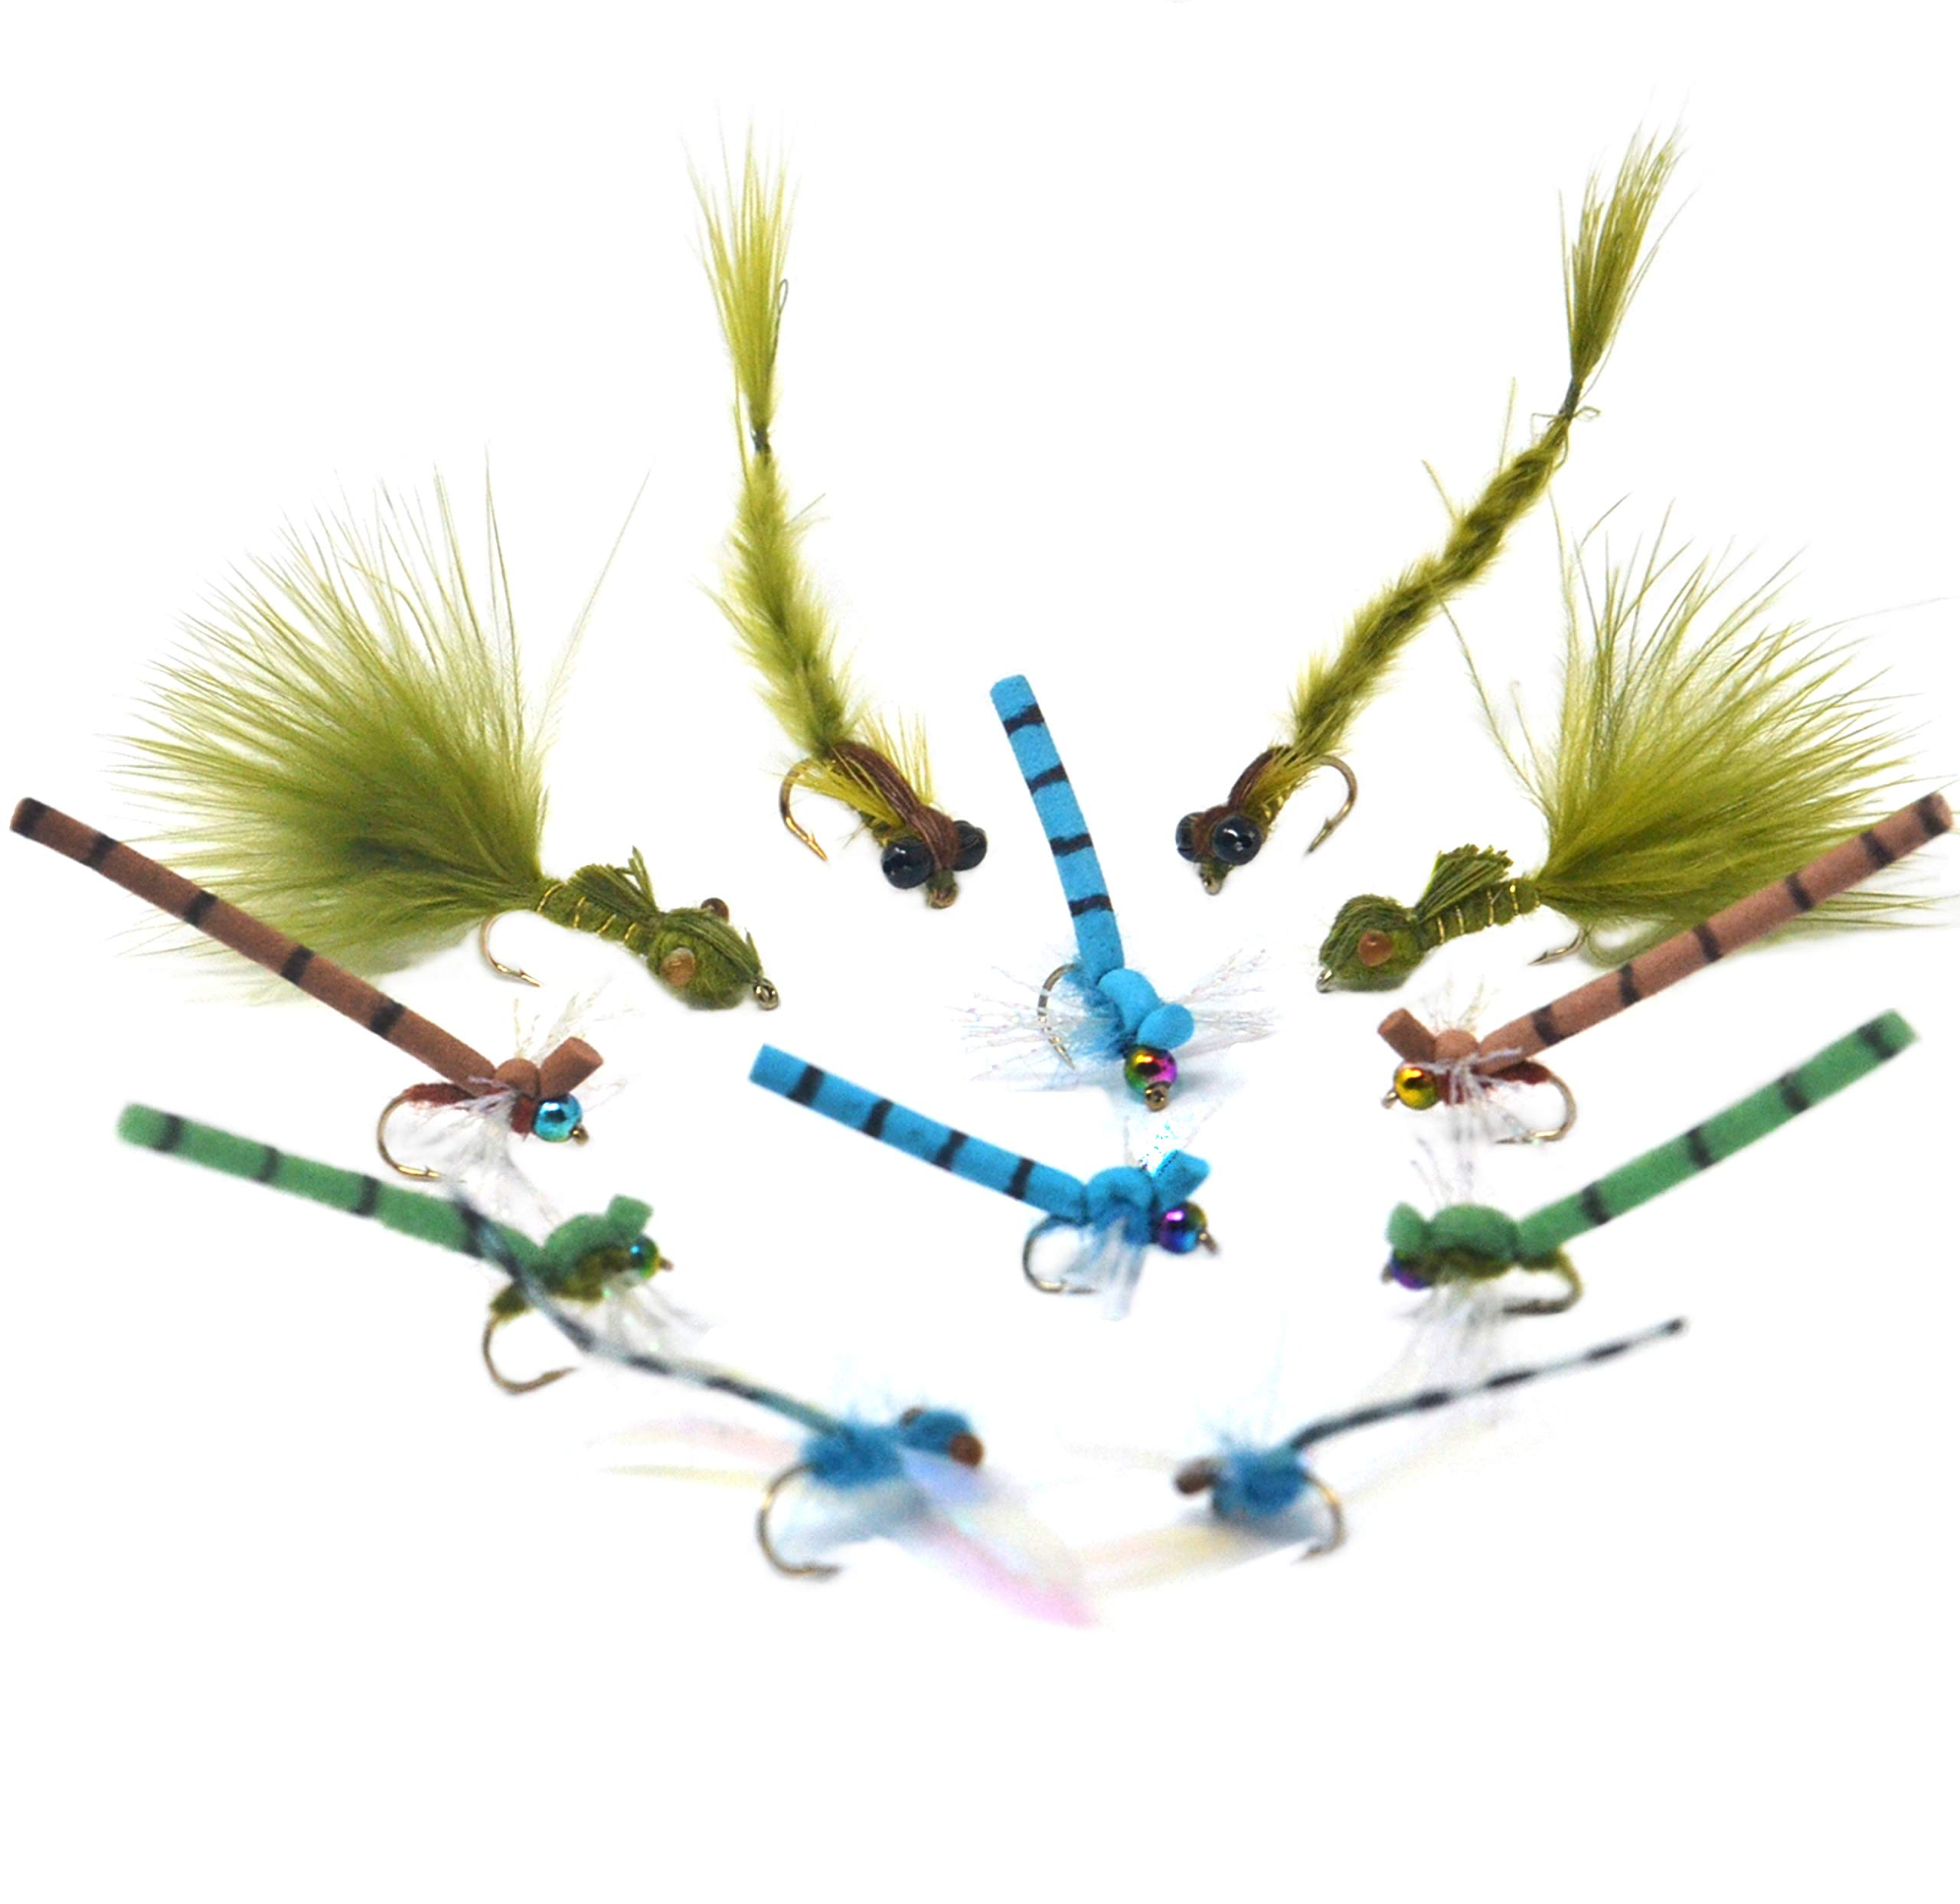 Outdoor Planet 12 Damsel Streamer Flies/Dragonflies and Damselflies/Adult Damsel/Living Damsel/Damsel Nymph/Dry Flies for Trout Fly Fishing Flies Lure Assortment by Outdoor Planet